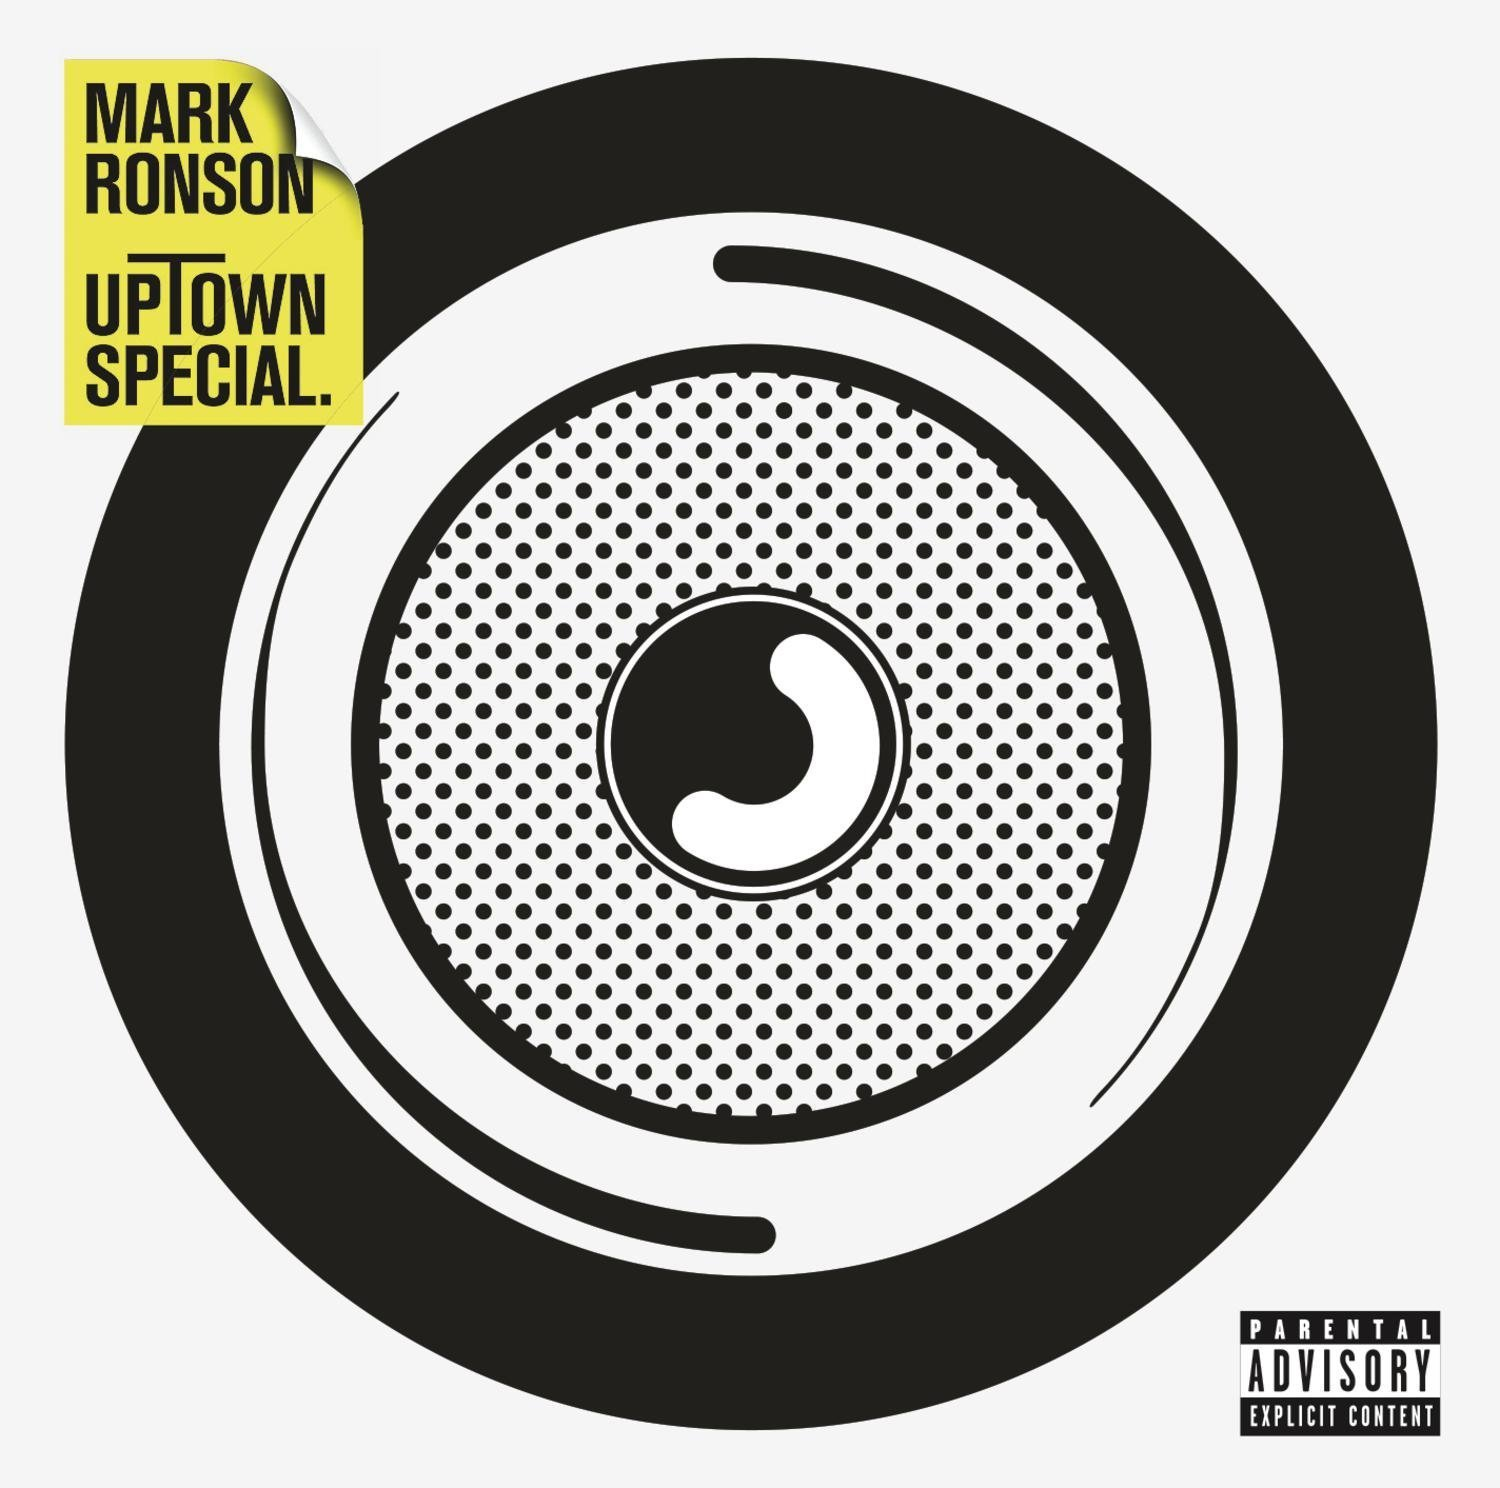 Uptown Special image